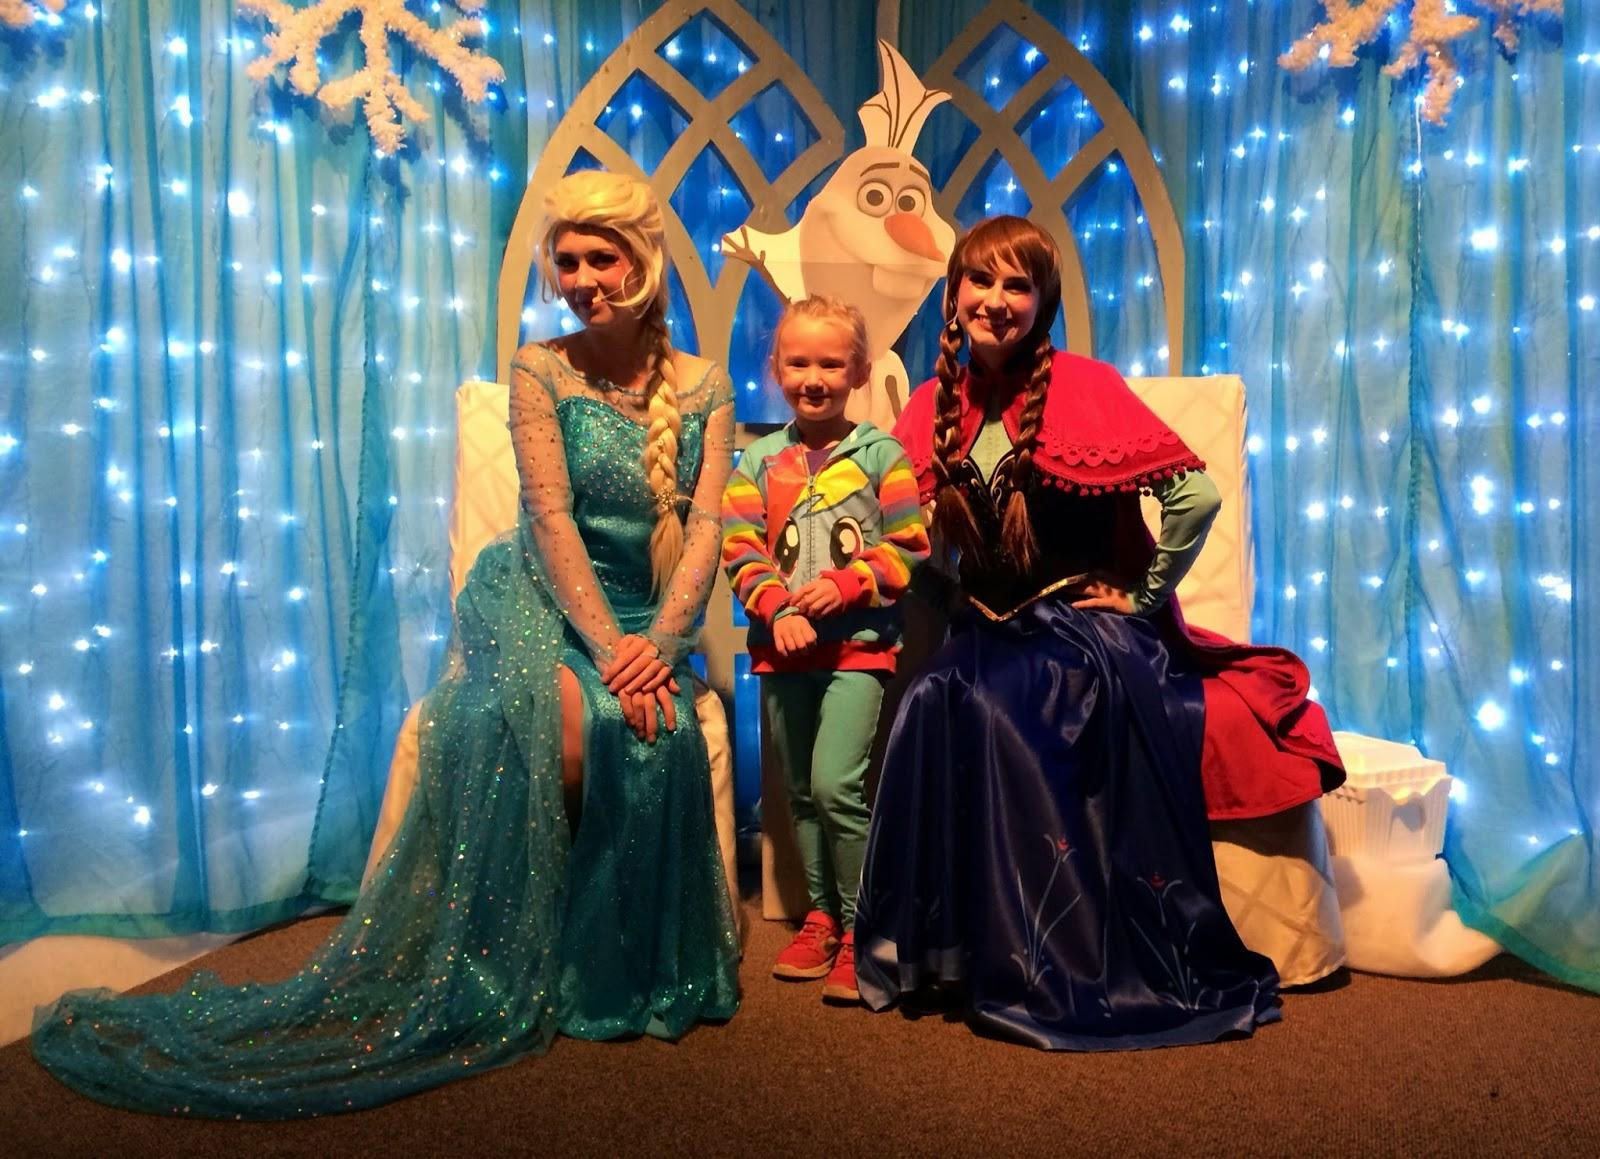 Anna Elsa Meet And Greet With Sing Along Tickets In Snohomish Wa